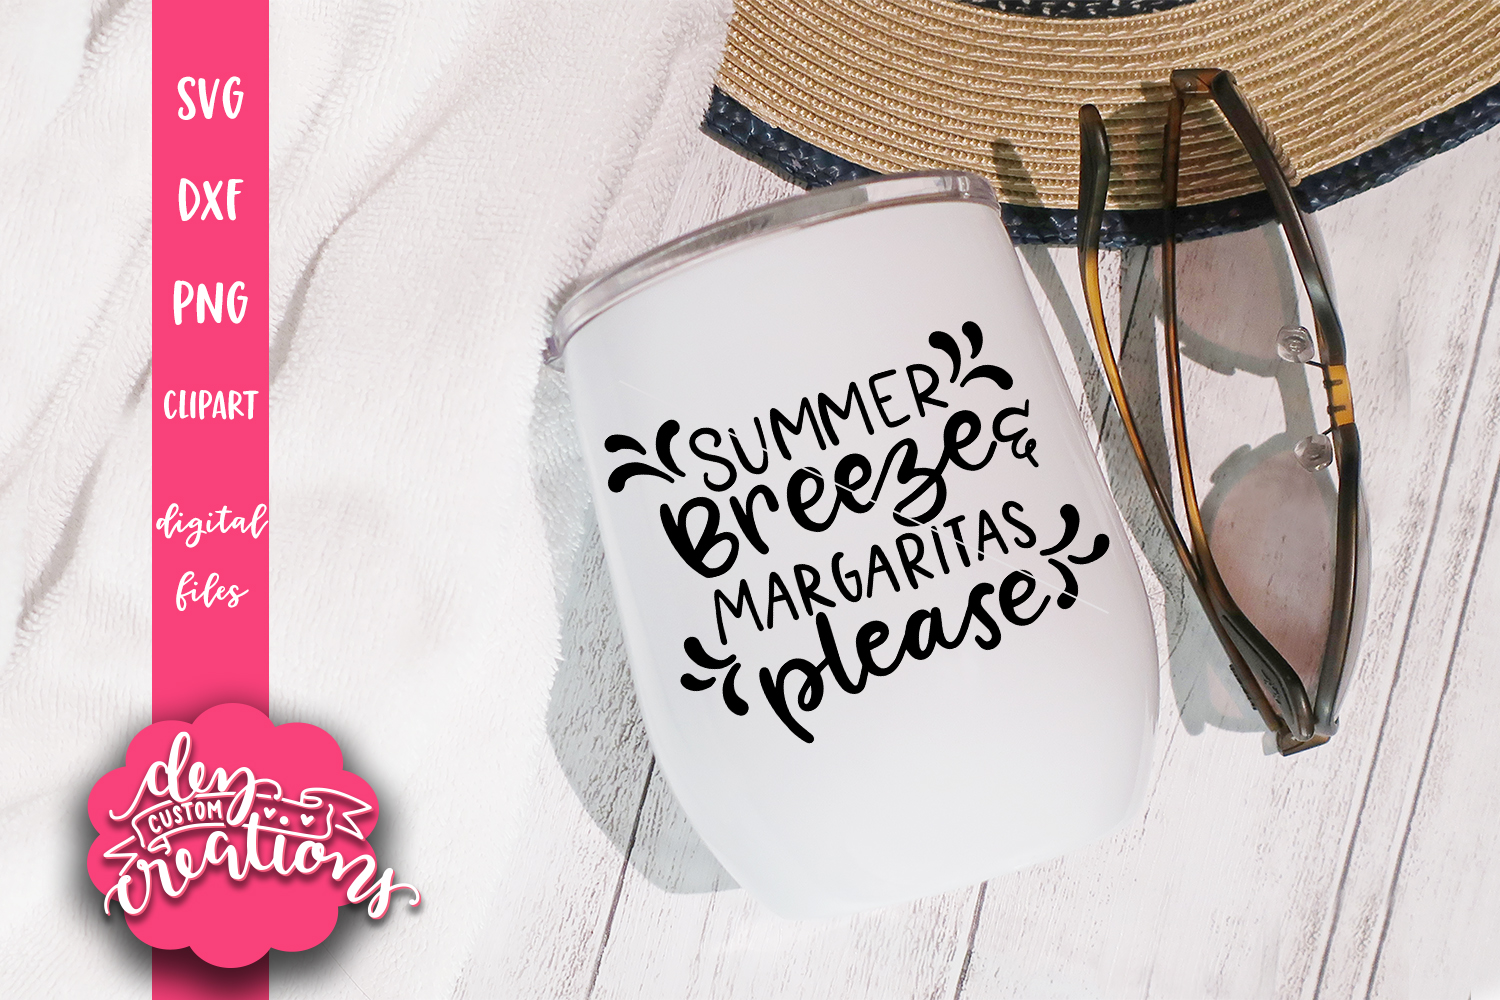 Summer Breeze & Margaritas Please - SVG - DXF - PNG Cut File example image 2